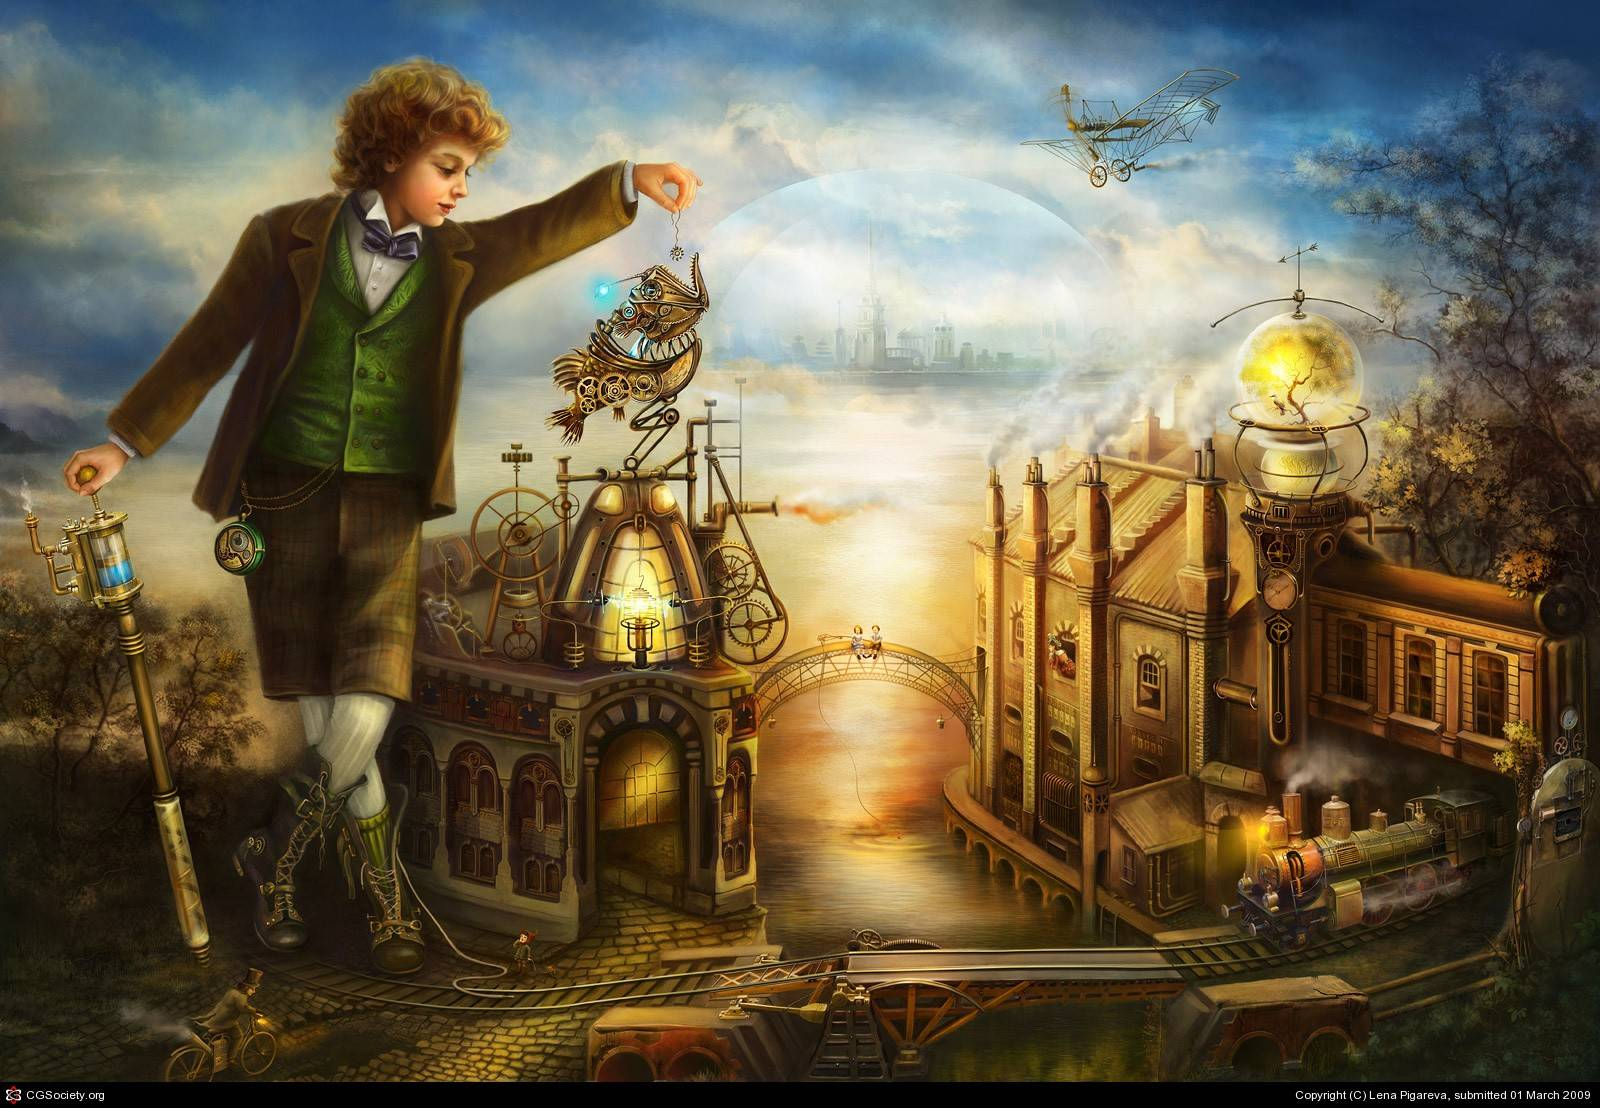 steampunk wallpaper 14 anime steampunk wallpaper 15 anime steampunk 1600x1108